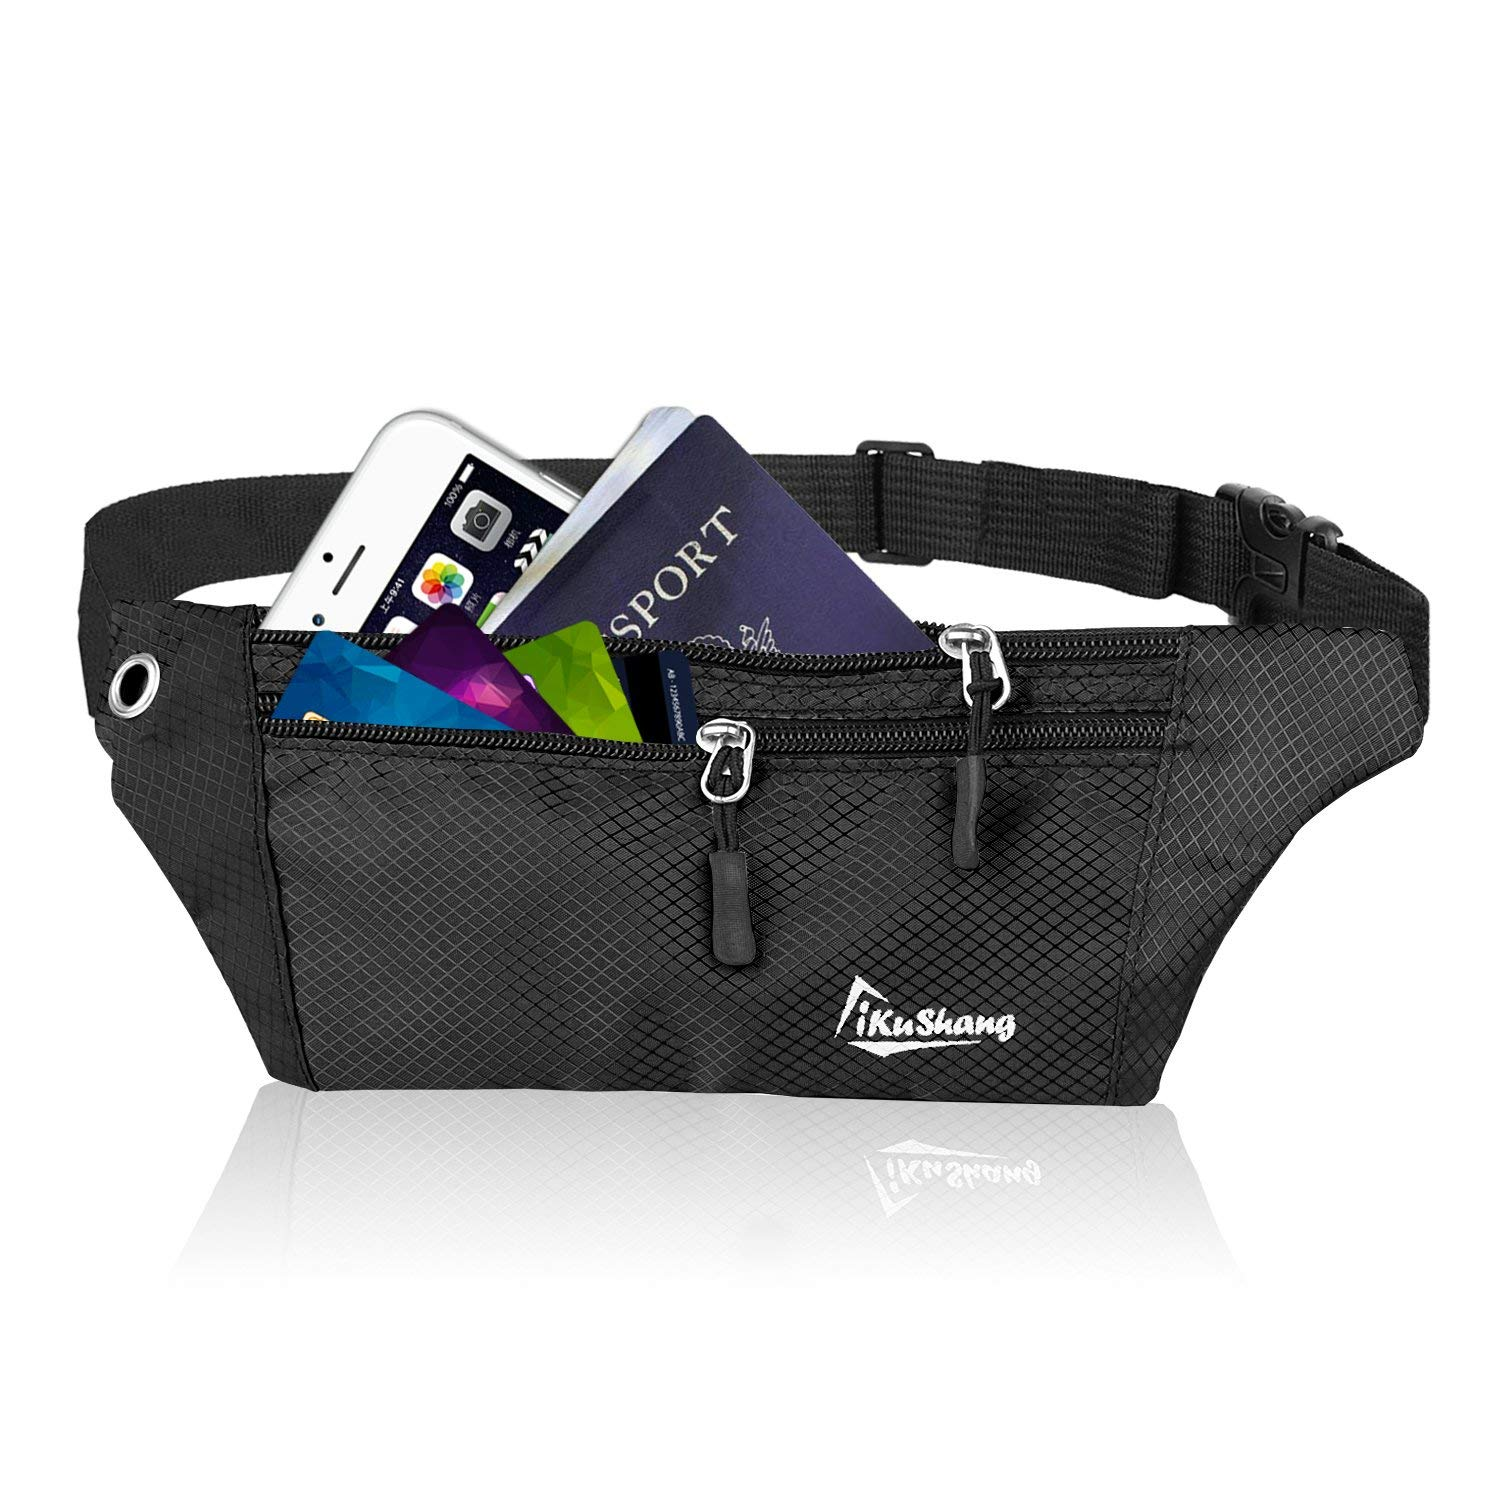 d174baa7ffb Get Quotations · iKuShang Fanny Pack Waist Pack Running Belt Fanny Packs  for Women Water Resistant Fanny Pack with